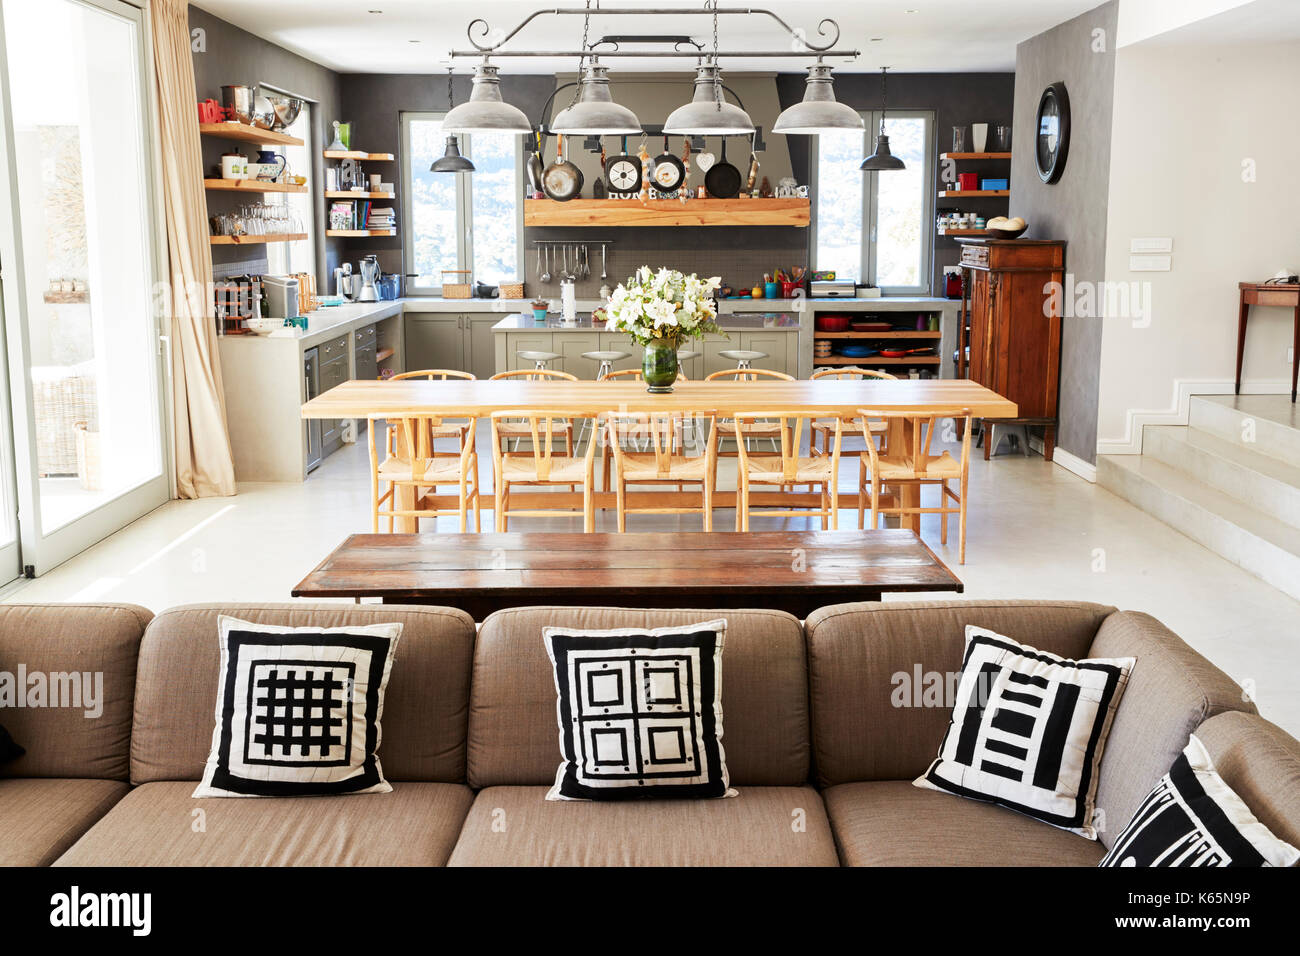 Home Interior With Open Plan Kitchen Lounge And Dining Area Stock Photo Alamy